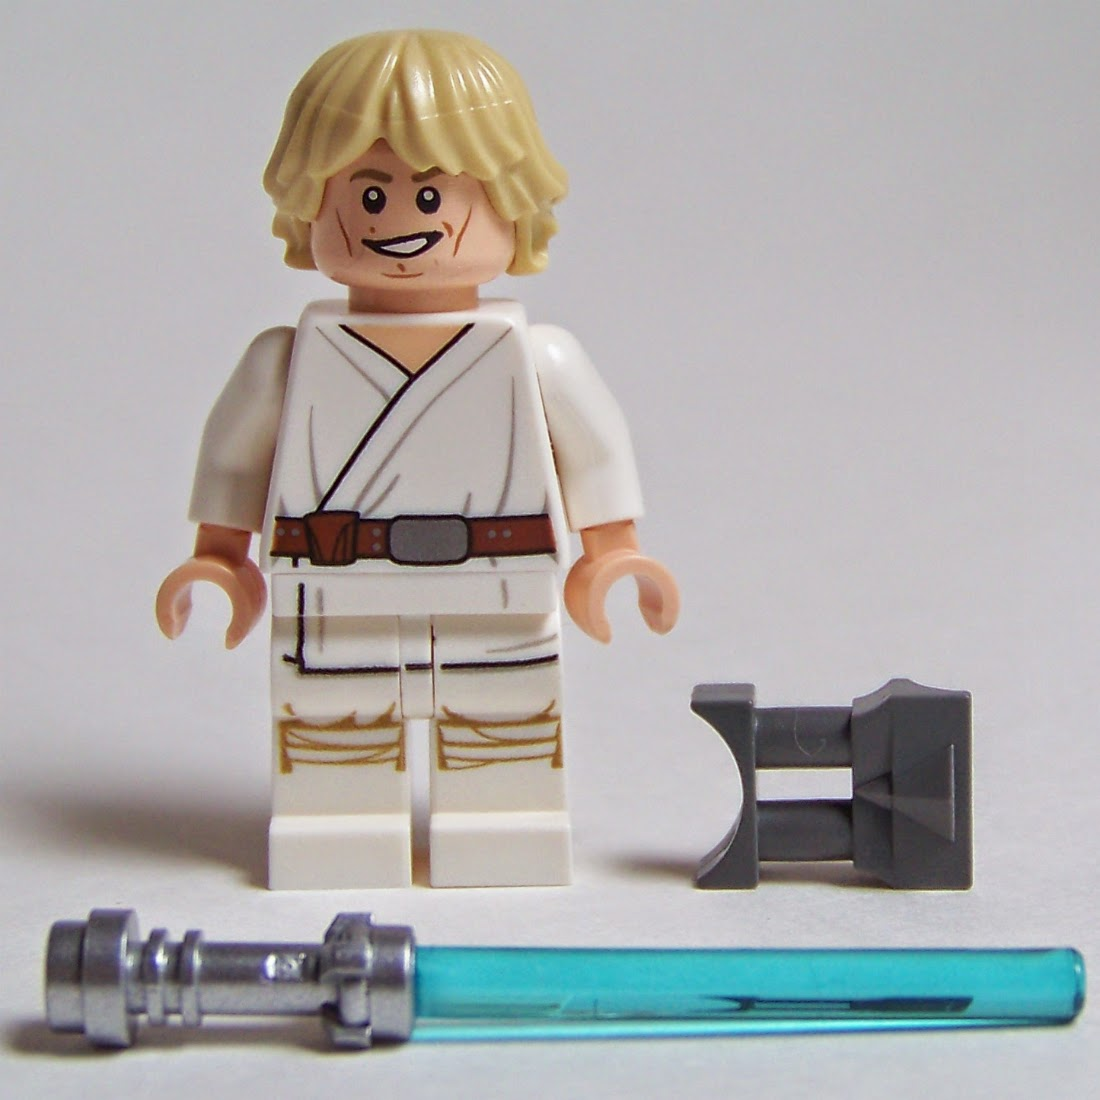 LEGO Luke Skywalker minifigure 2014